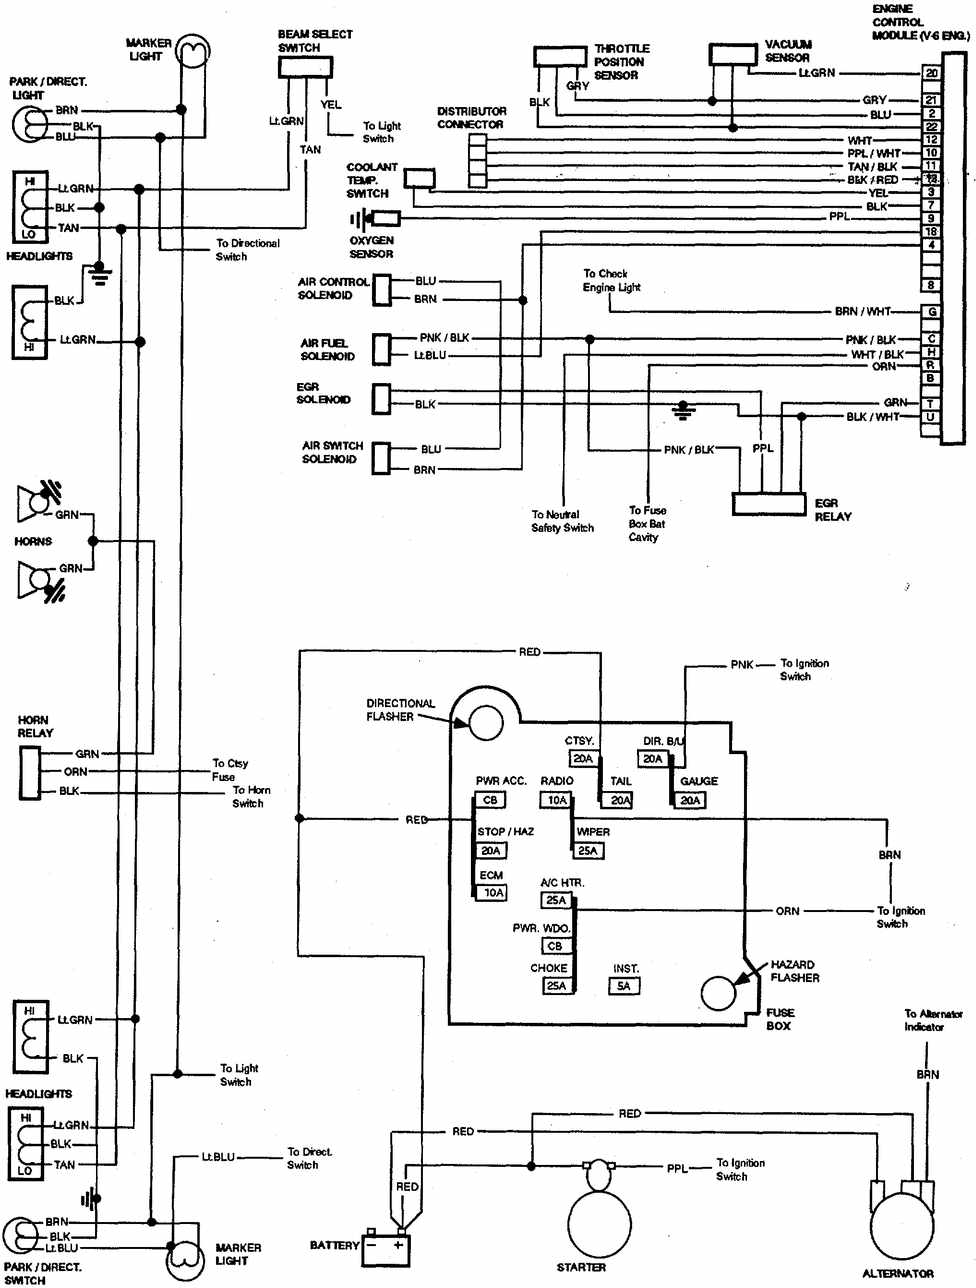 medium resolution of wiring diagram 1987 el camino ss ford steering column wiring diagram1983 el camino wiring diagram wiring